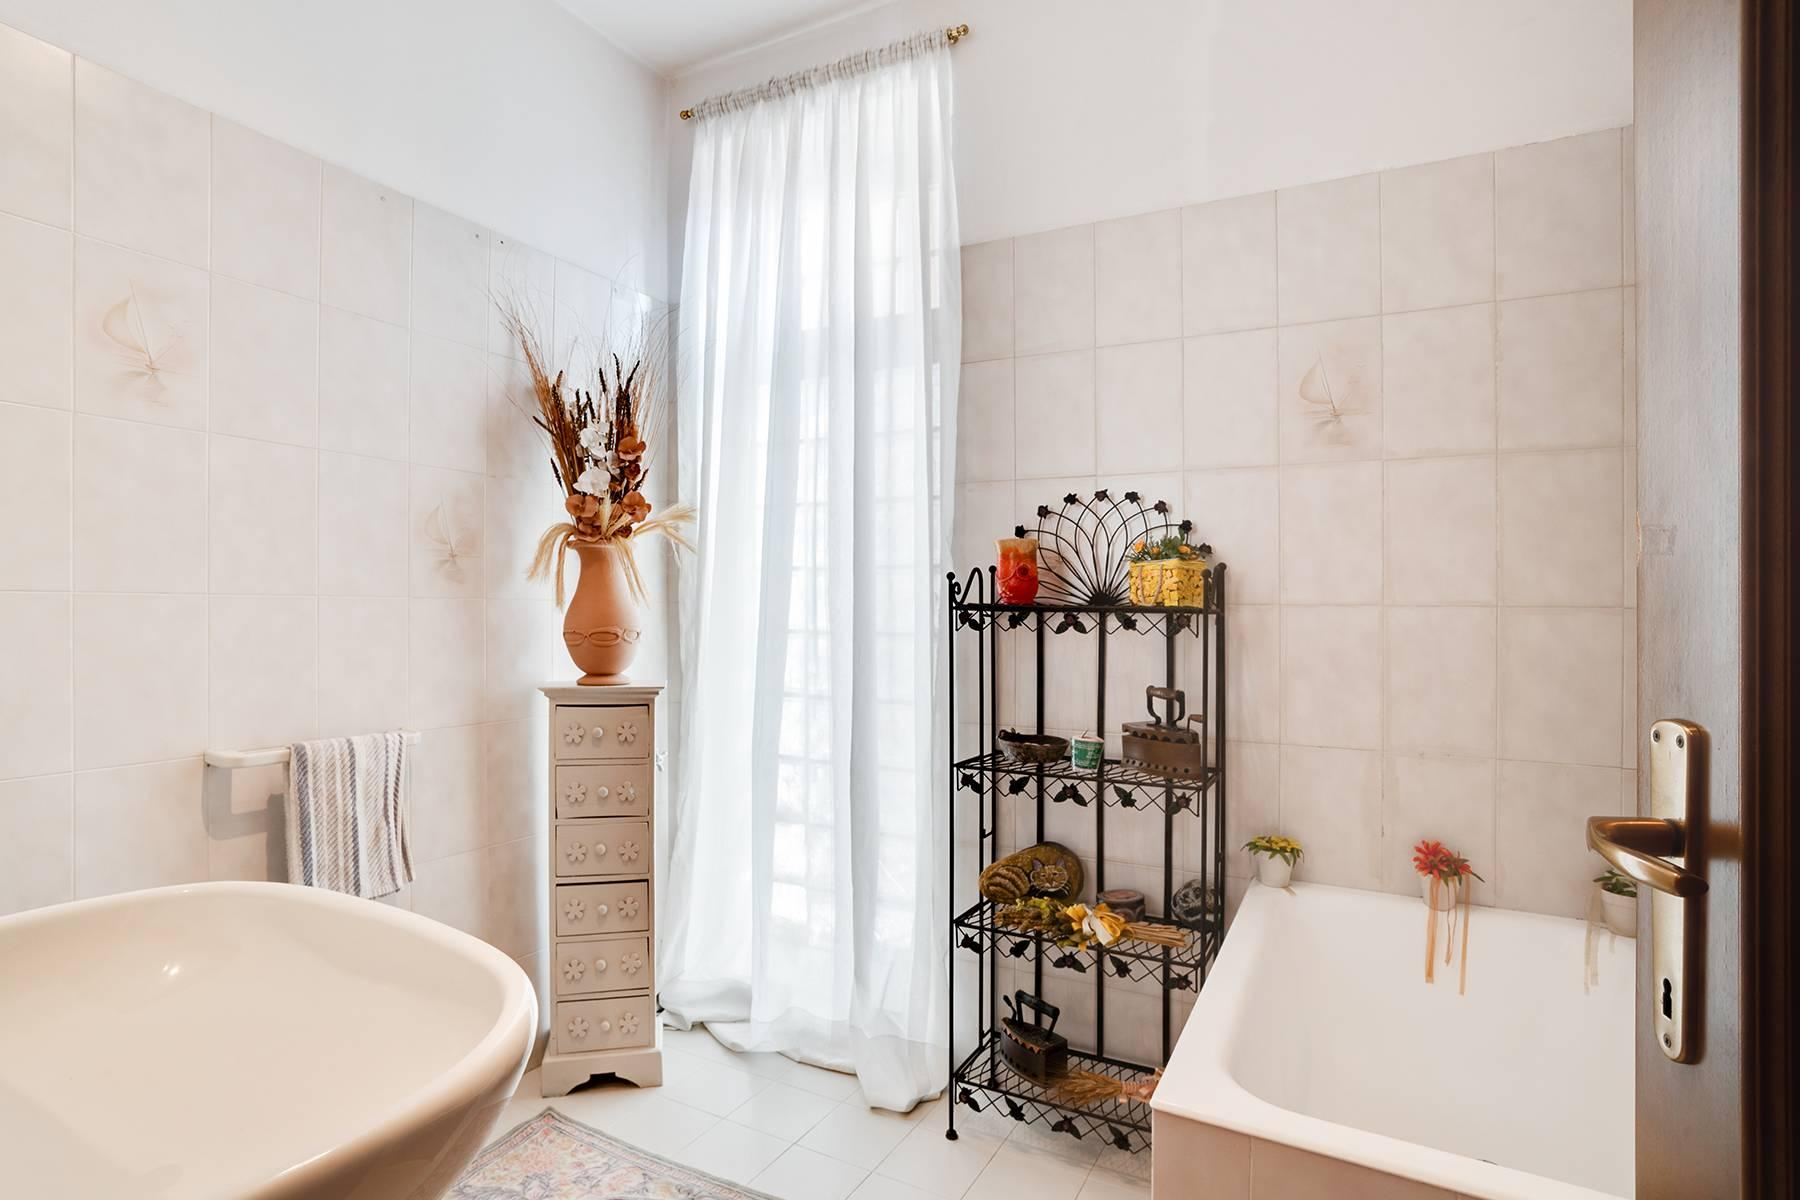 Independent villa a few steps from the heart of Arona - 16